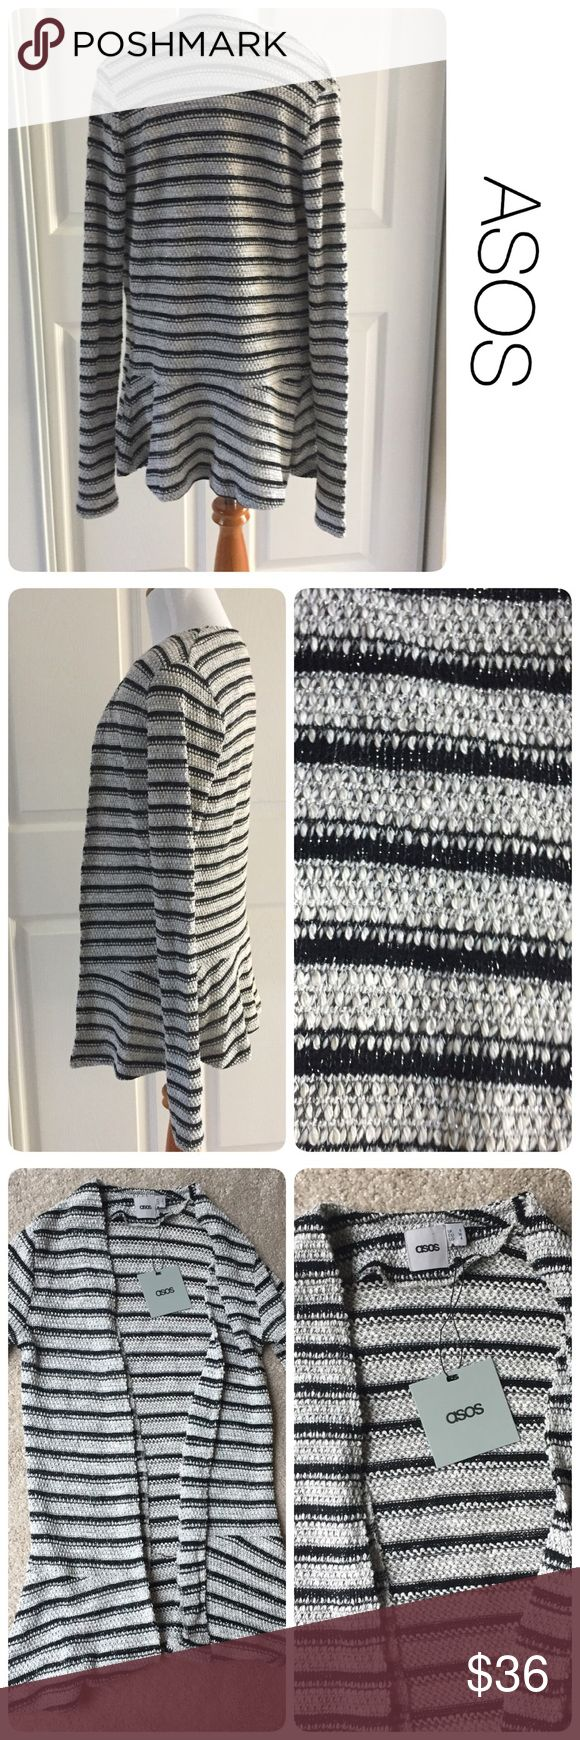 NWT ASOS peplum striped metallic cardigan size 4 ♦️New with tag.                                             ♦️Materials- see photo with details ♦️Measurements: ♦️Underarm to underarm flat across is approximately 19 inches   ♦️Back of neck to bottom of front hem is approximately 27 inches ASOS Sweaters Cardigans